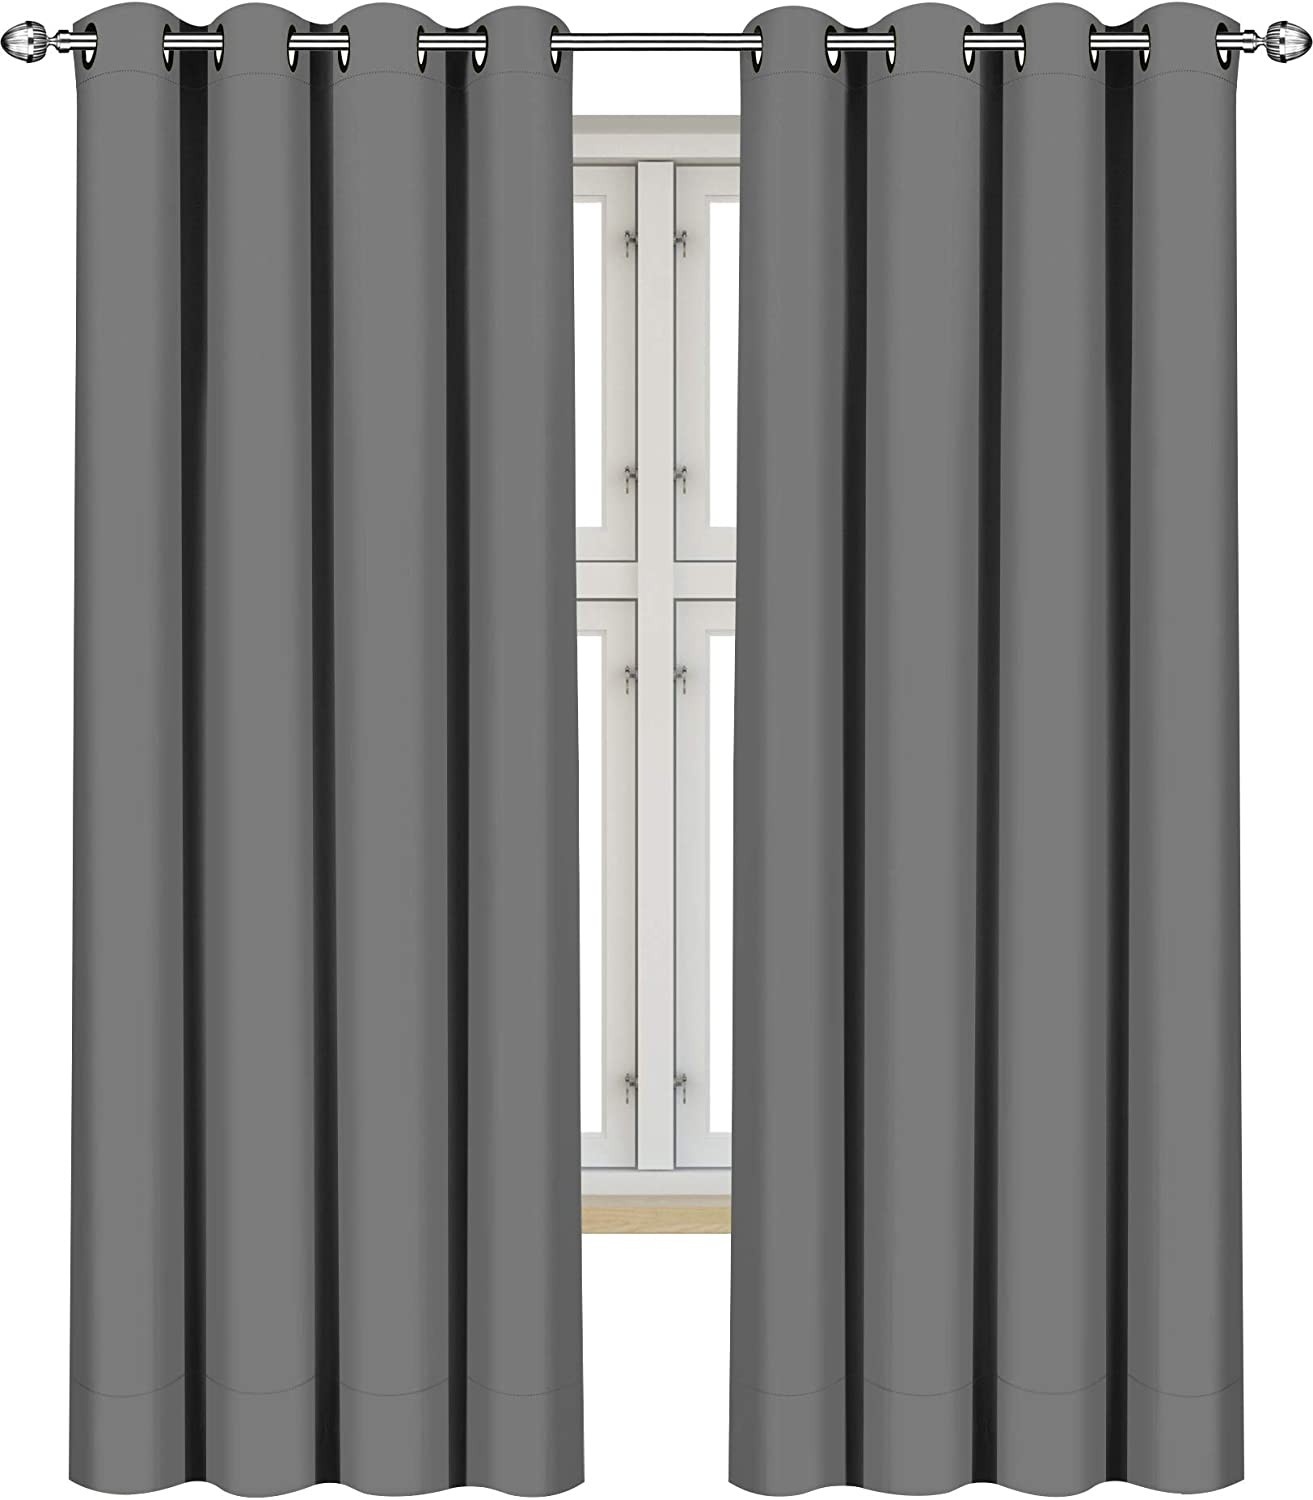 """Utopia Bedding 2 Panels Eyelet Blackout Window Curtains Thermal Insulated for Bedroom 183 cm Drop (Grey, 117 cm Wide) 2xW46"""" xL72"""" (117 x 183 cm) Grey"""